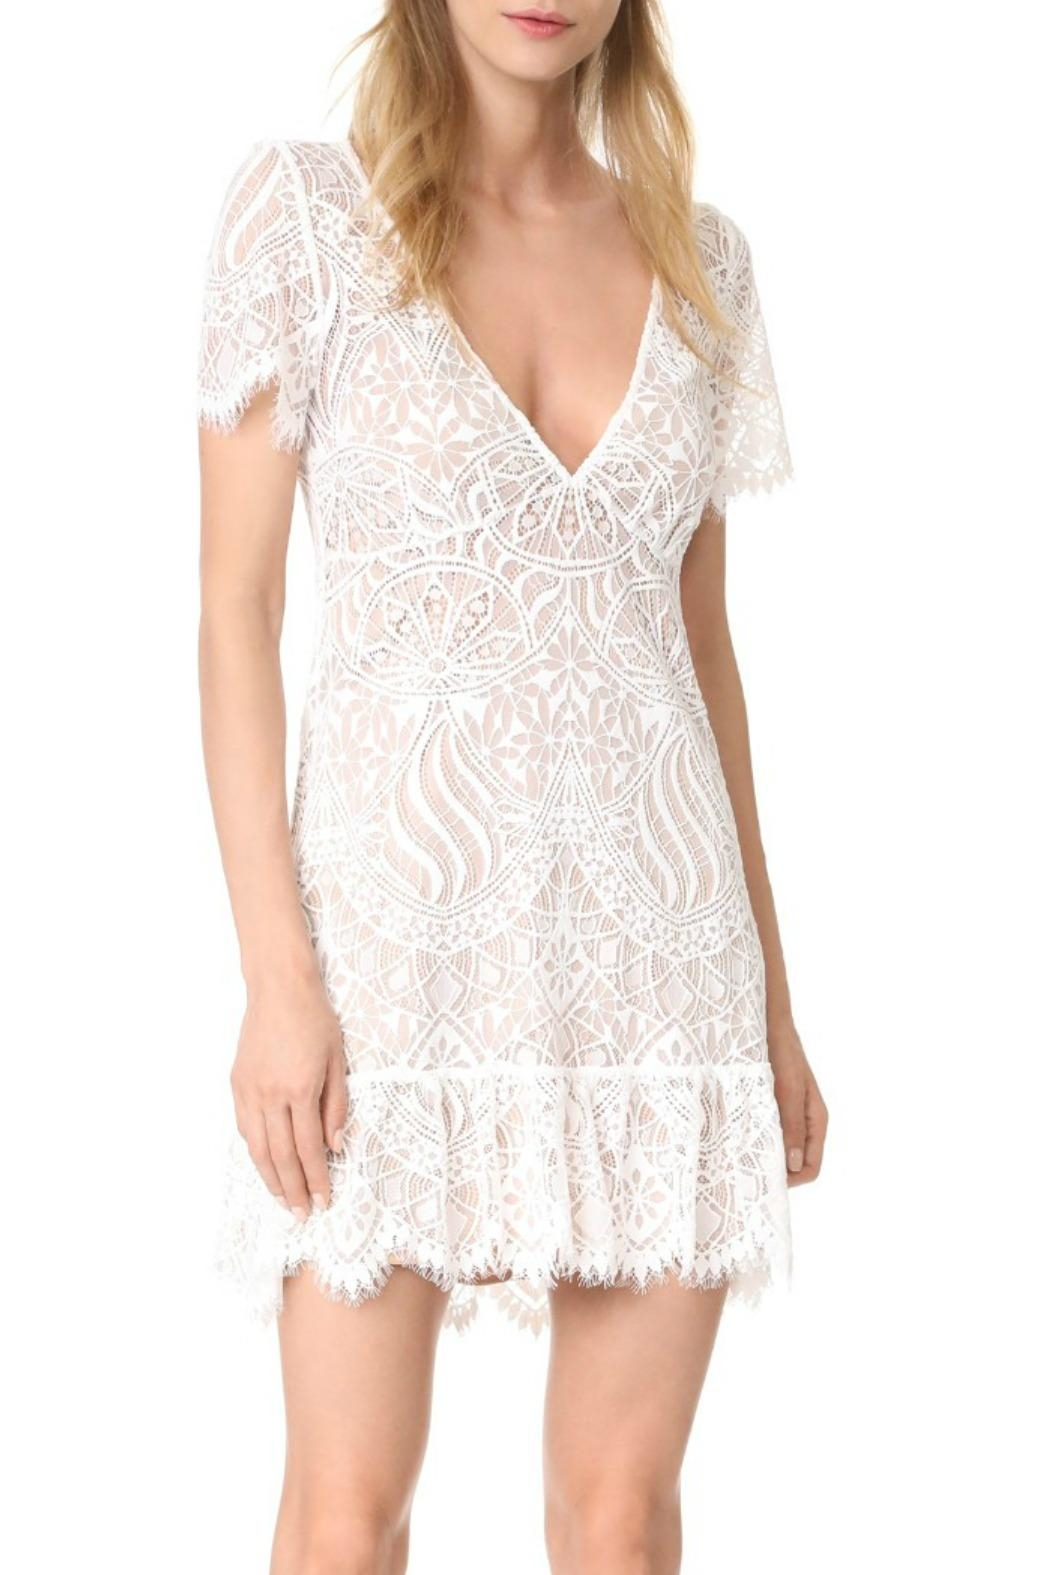 FOR LOVE & LEMONS Lily Lace Dress - Main Image